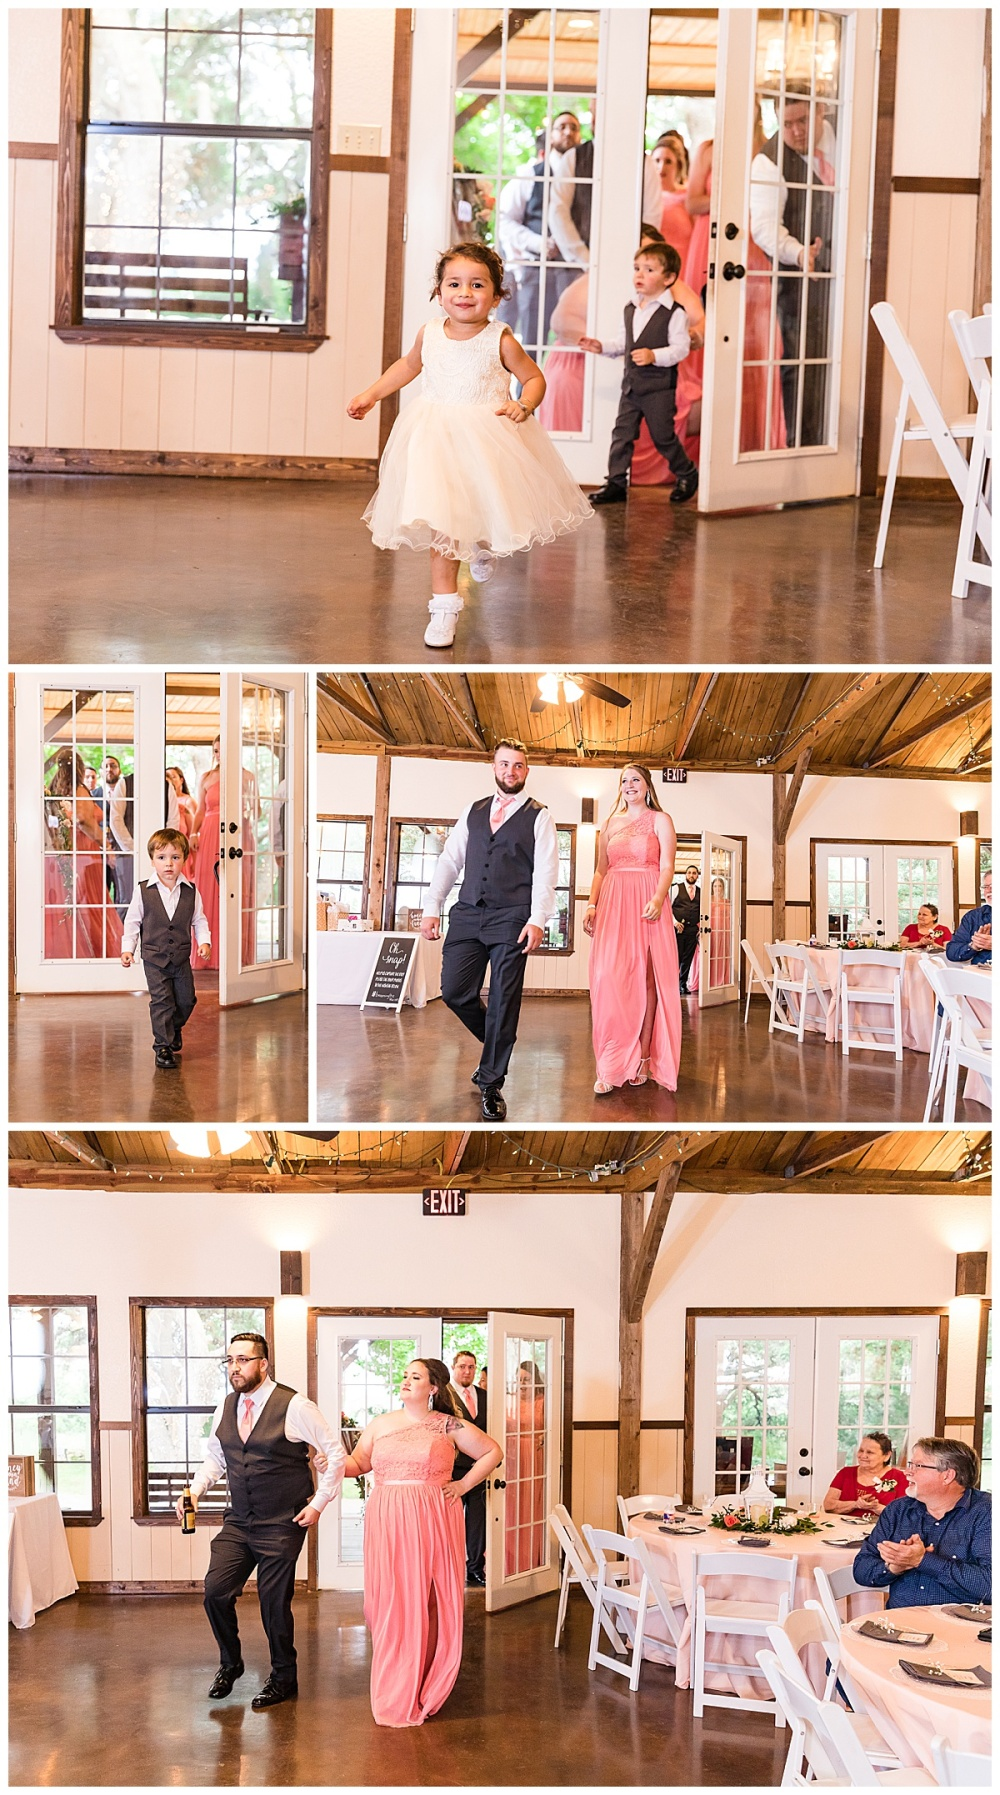 Michael-Tiffany-Wedding-New-Braunfels-Texas-Canyon-Lake-Cabins-and-Cottages-Carly-Barton-Photography_0041.jpg